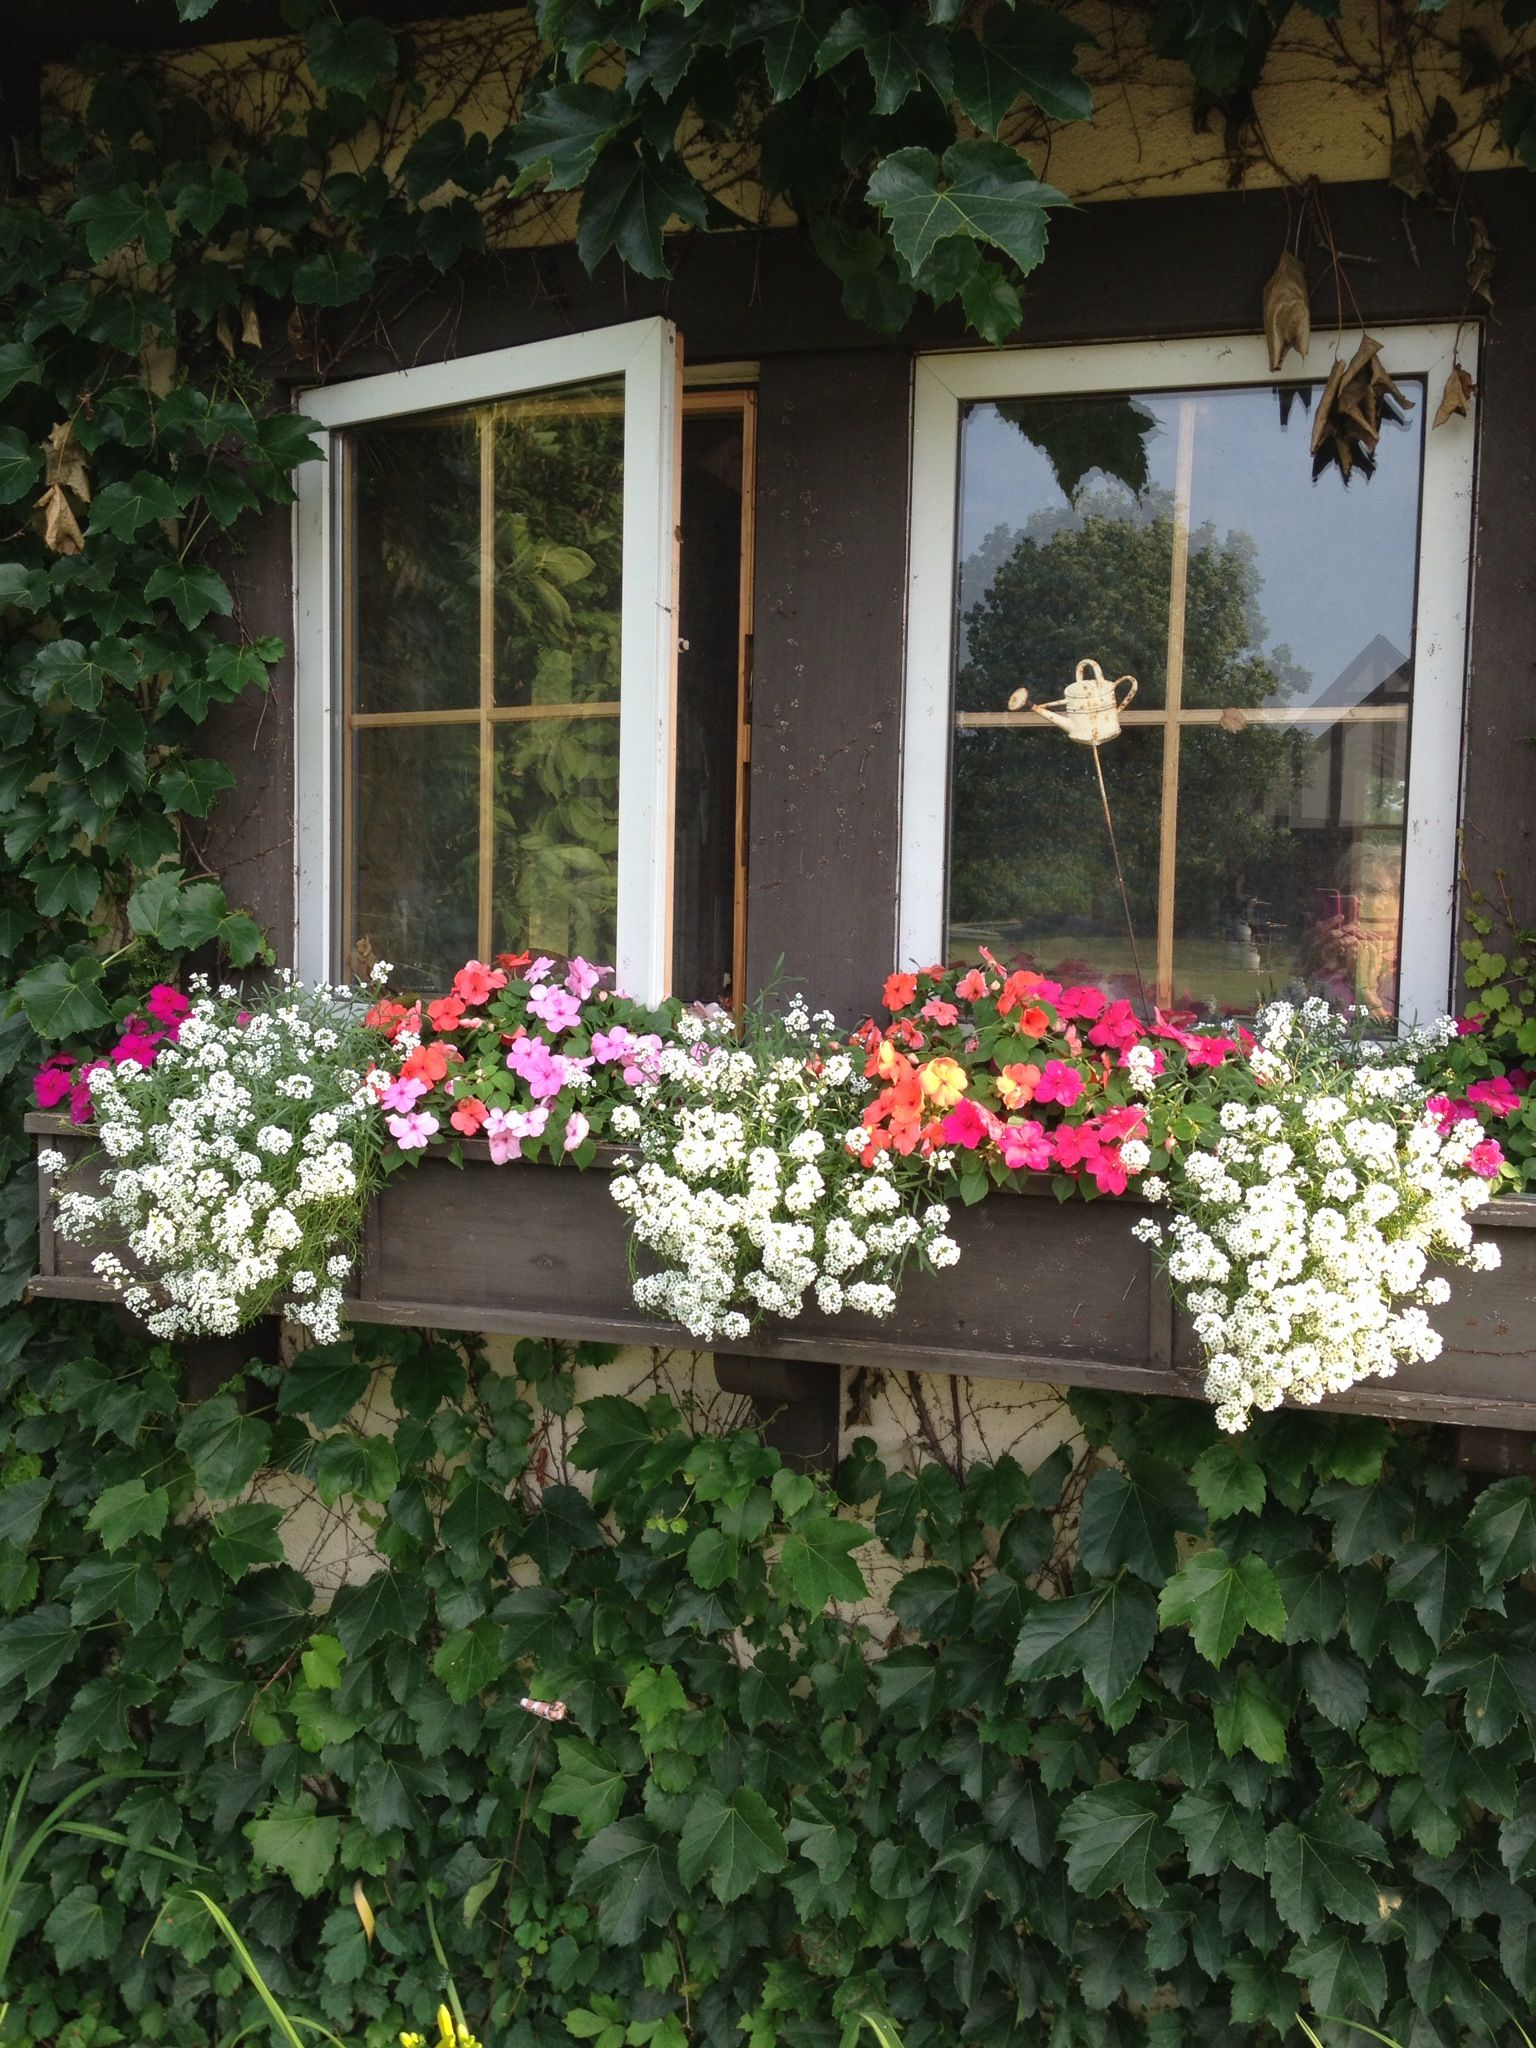 Good window box flowers for part sun in Midwest sweet